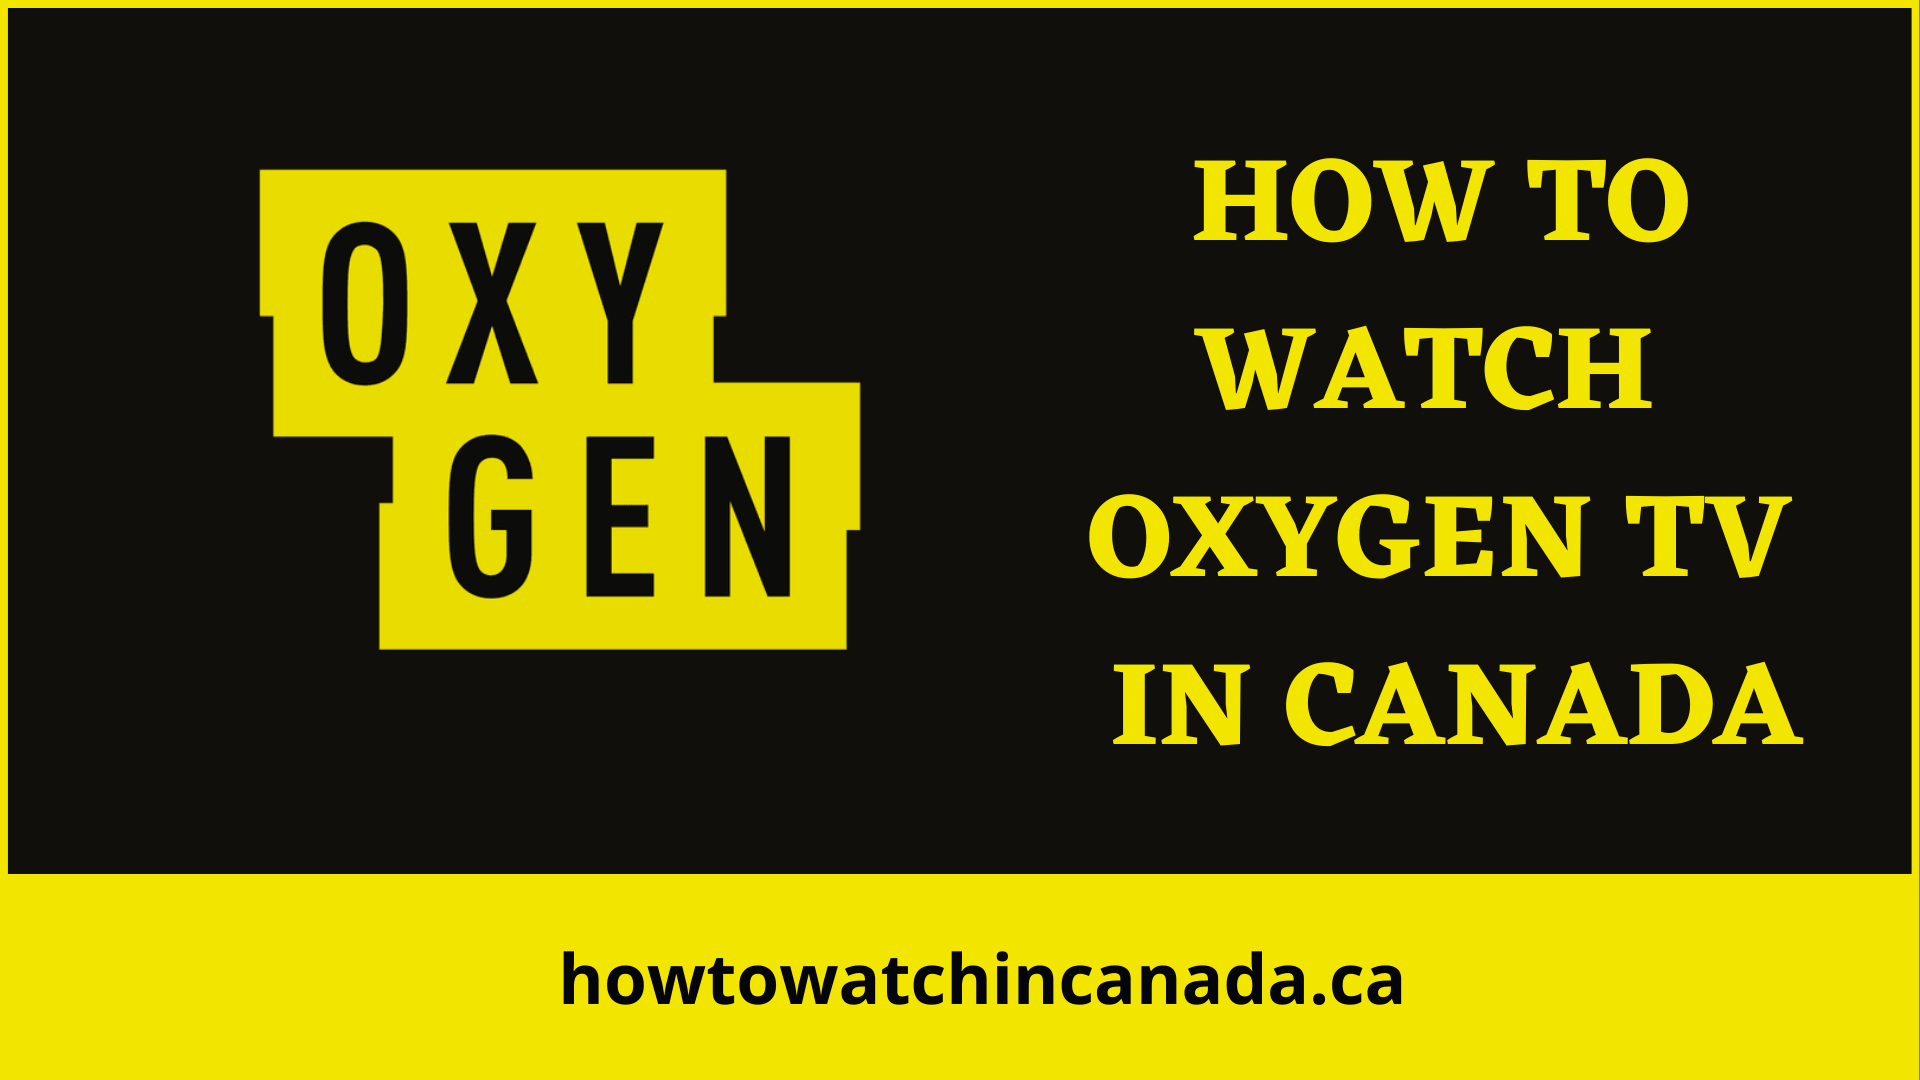 oxygen-feat-how-to-watch-in-canada